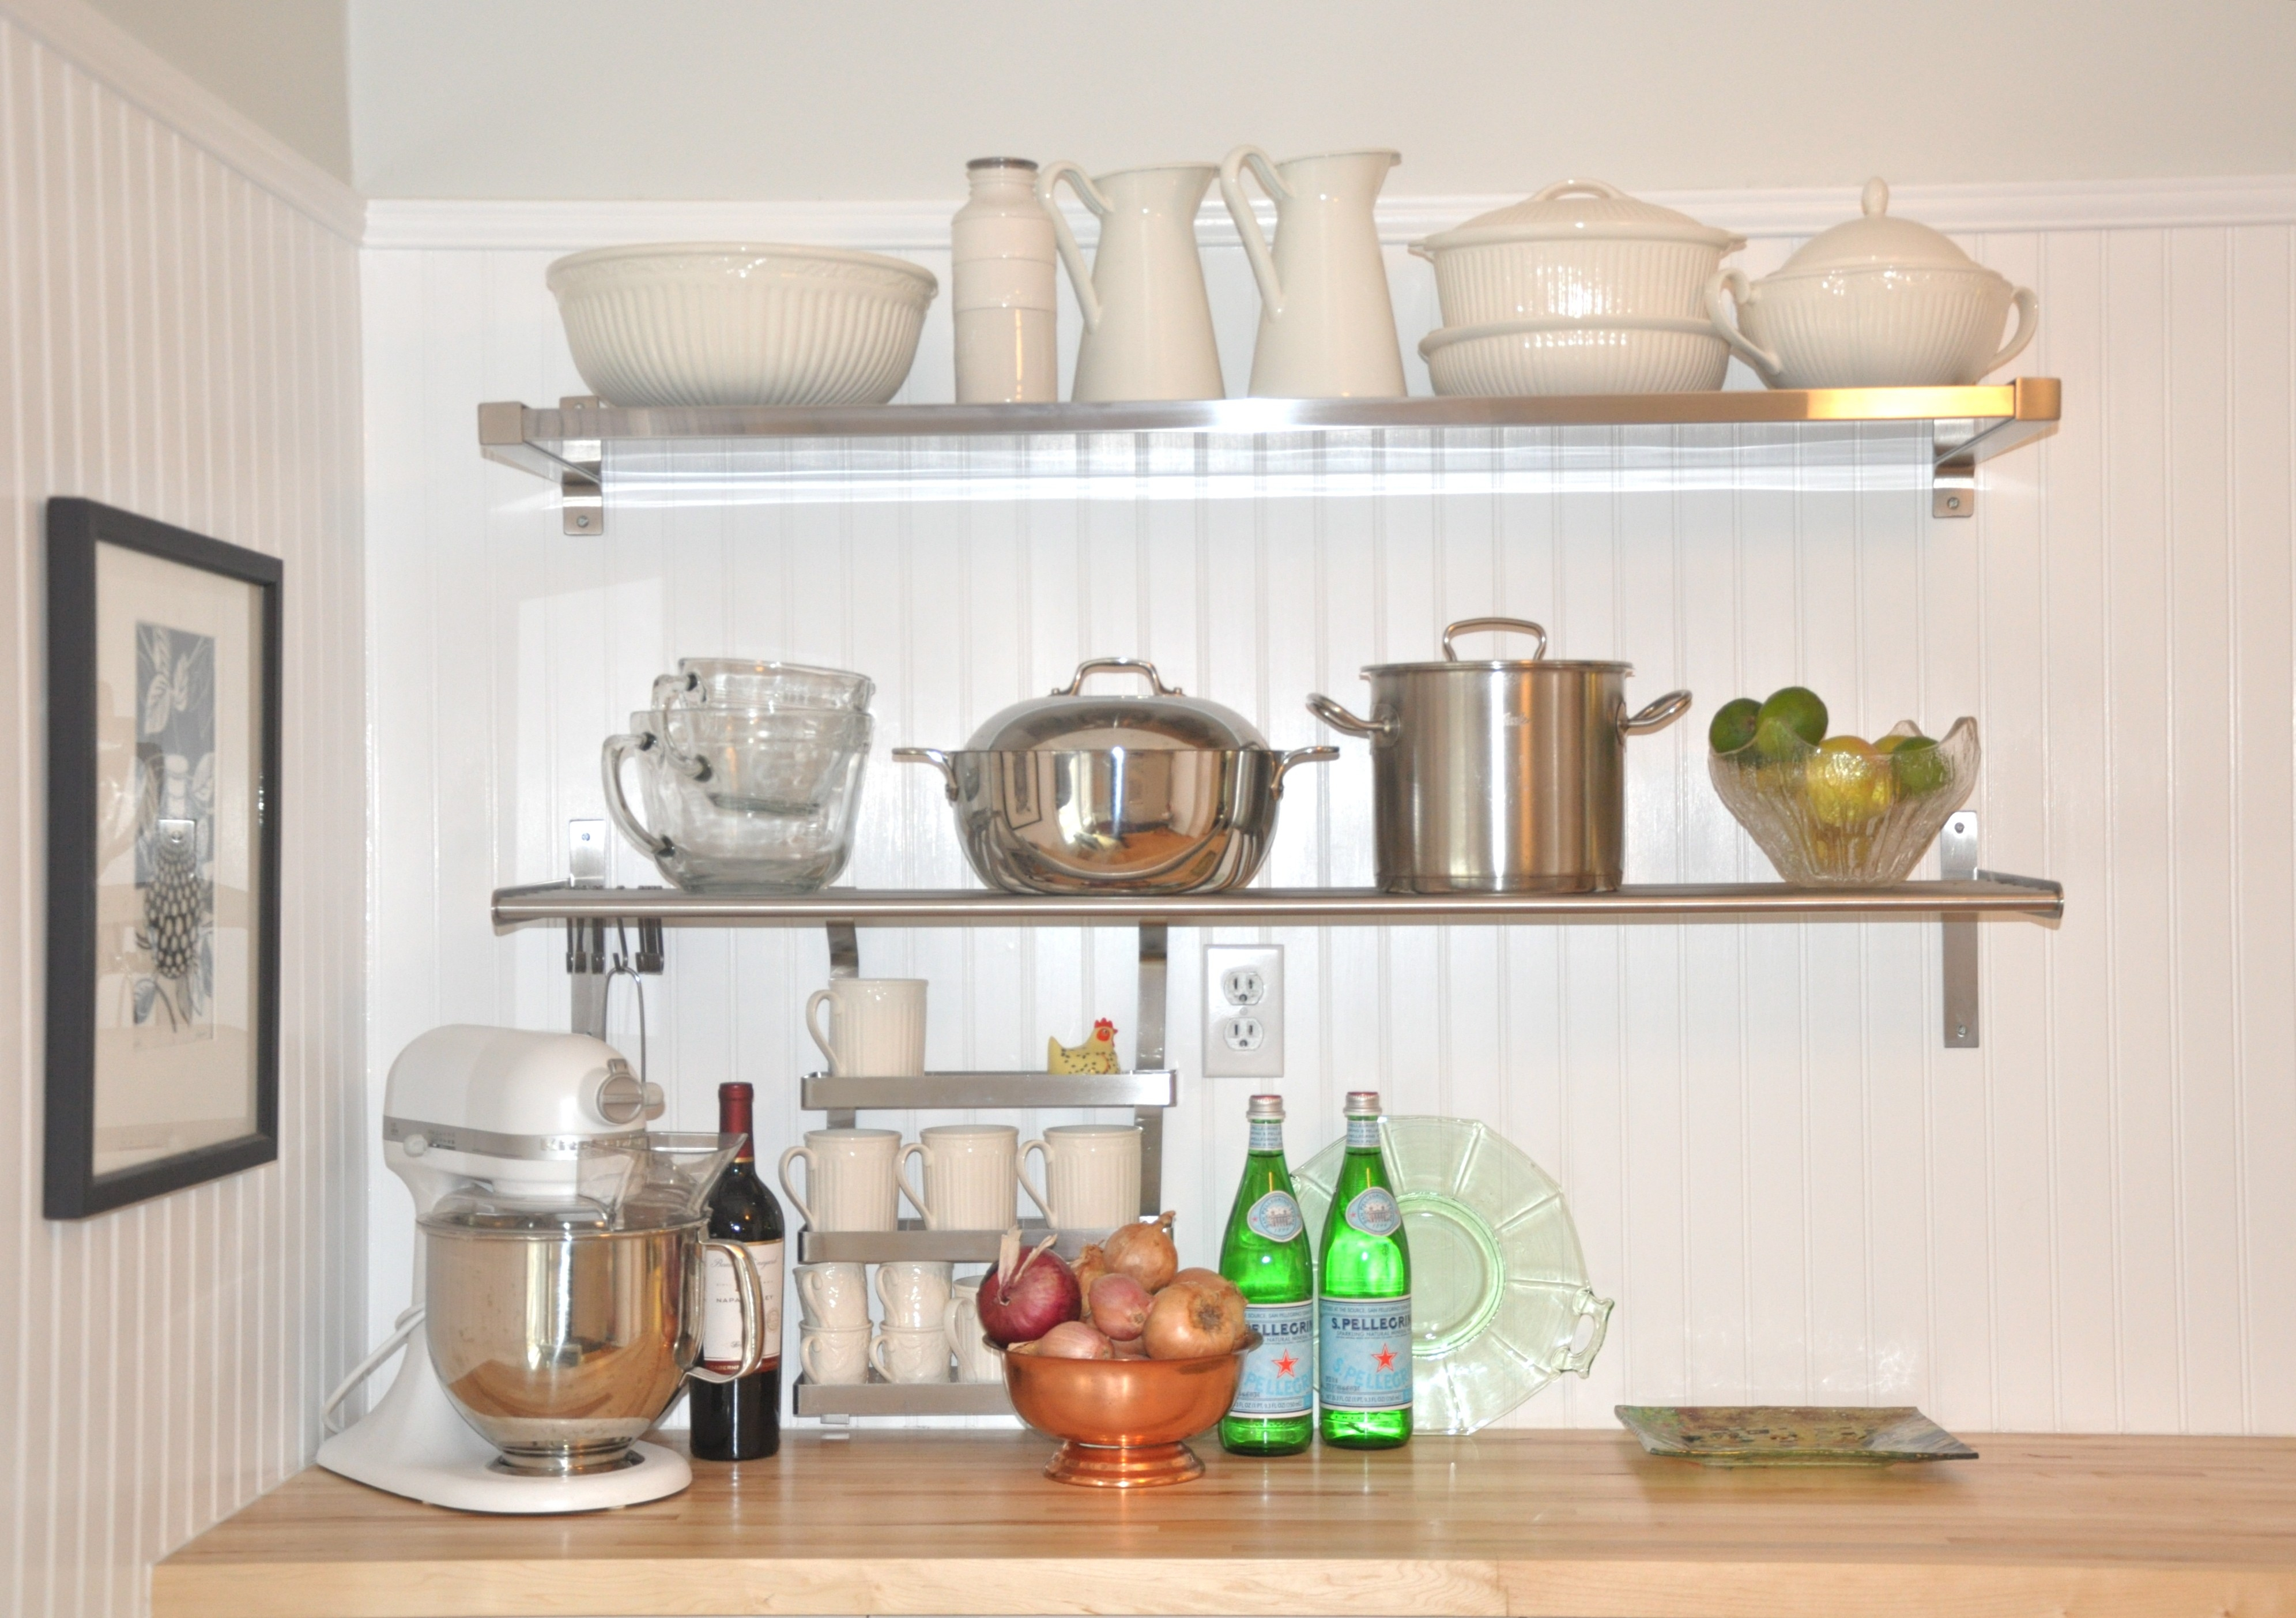 Kitchen Wall Shelves Ideas Wooden Stainless Steel Wood Eiforces For Kitchen Wall Shelves (#9 of 12)